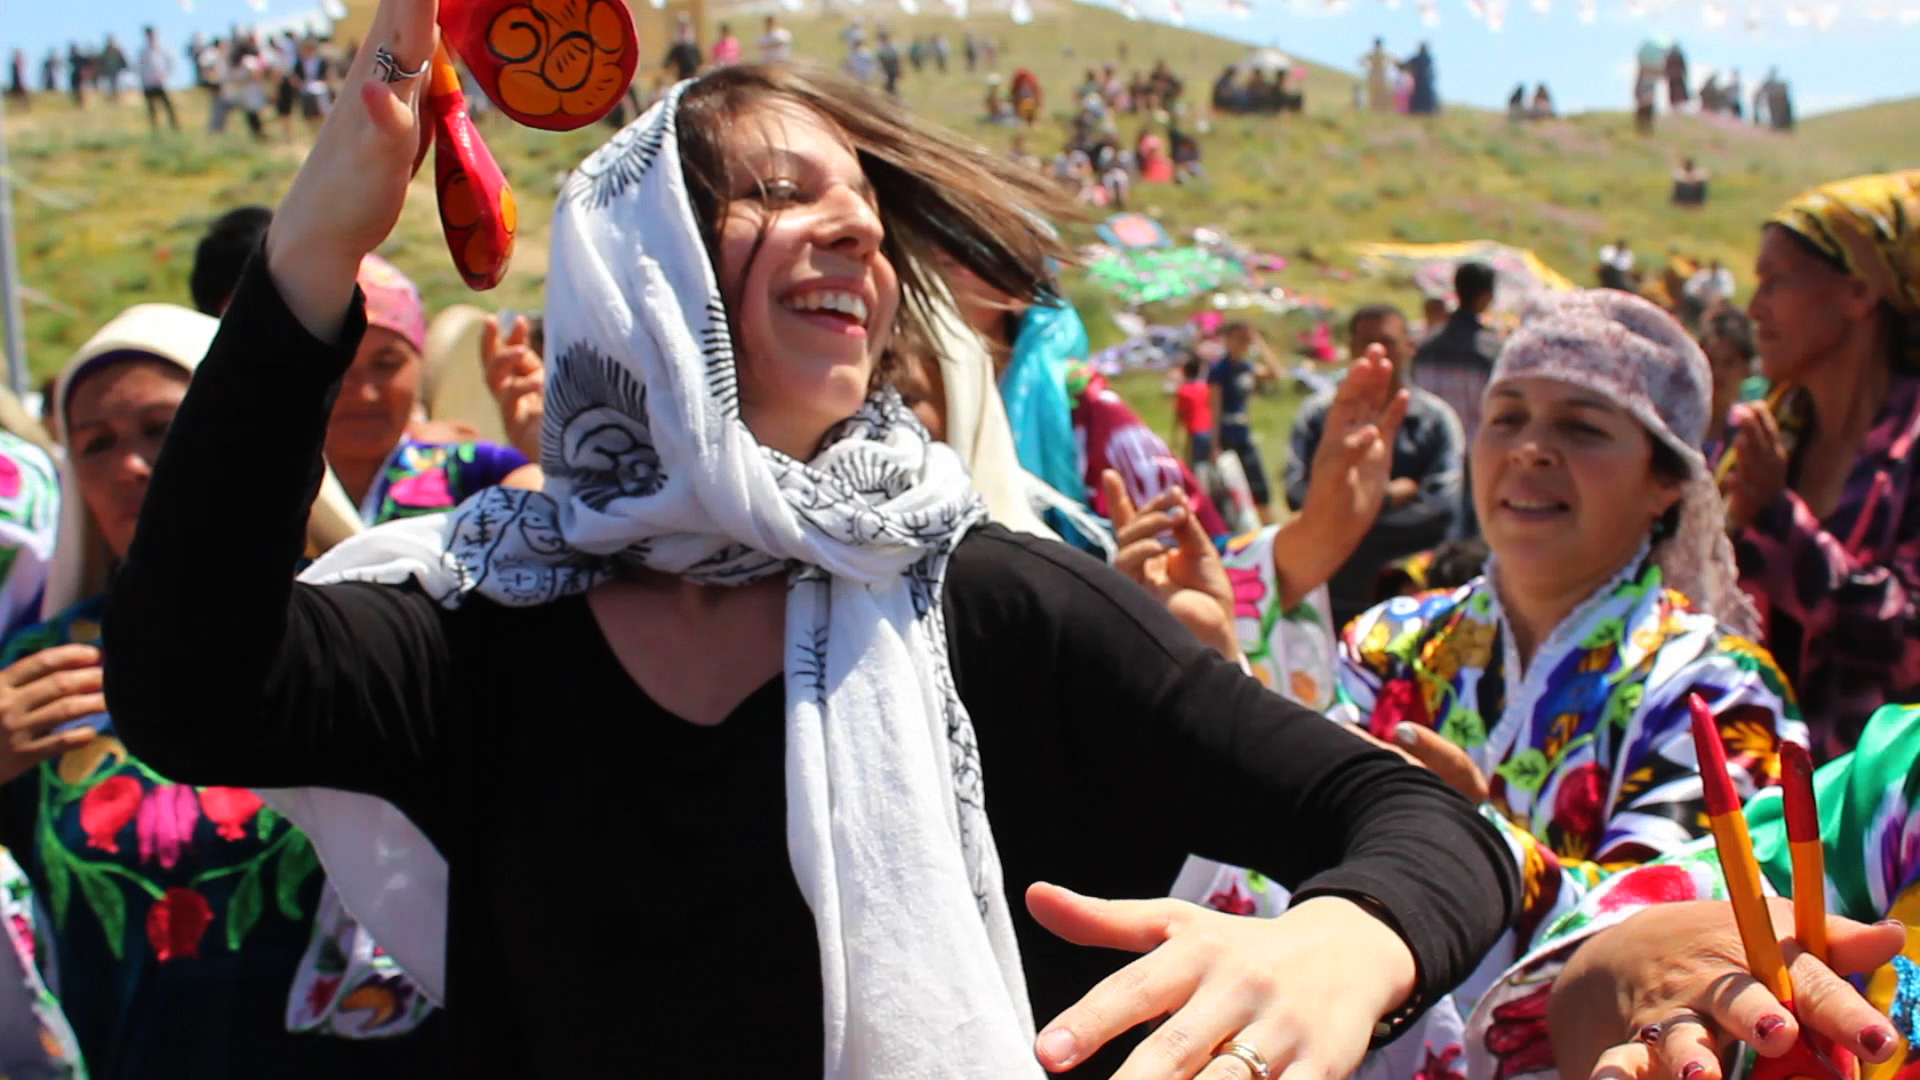 Caption: Mickela at the Asrlar Sadosi Festival in Navoi, Uzbekistan -, Credit: Madina Khusanova